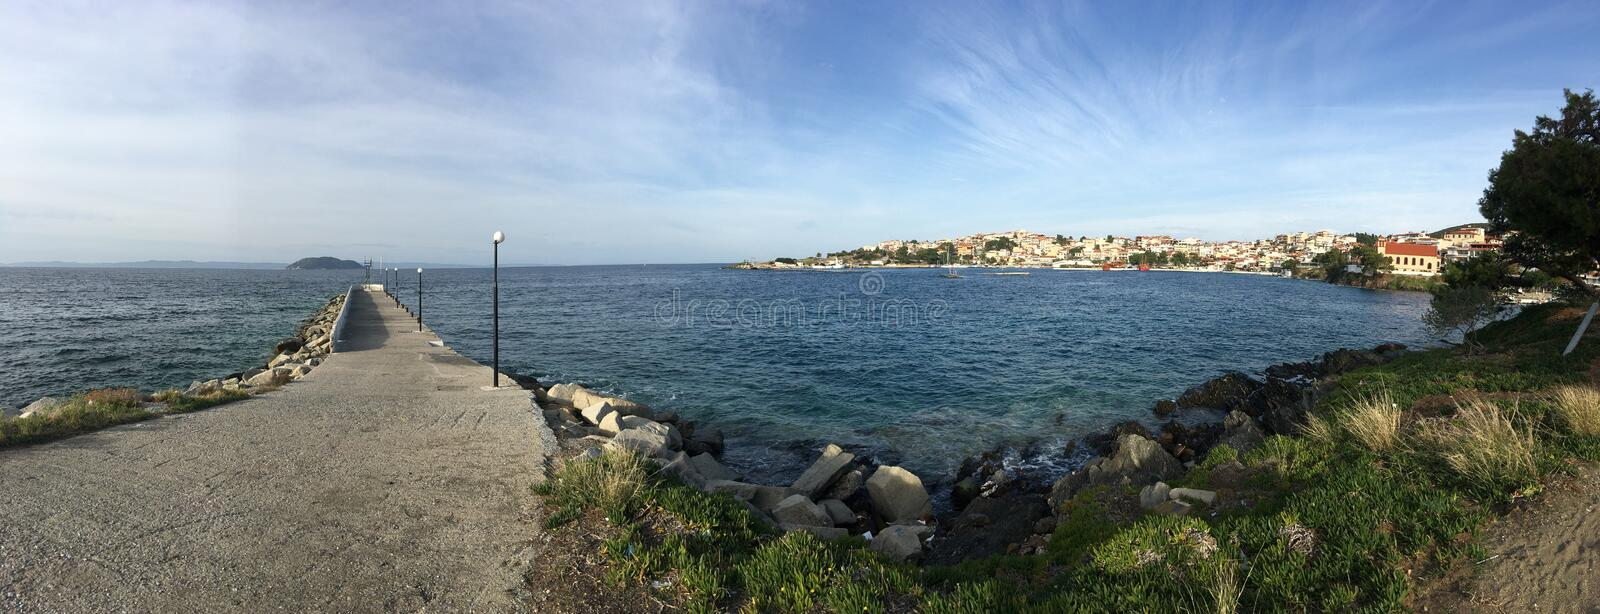 Pier in Neos Marmaras. Panorama royalty free stock photography